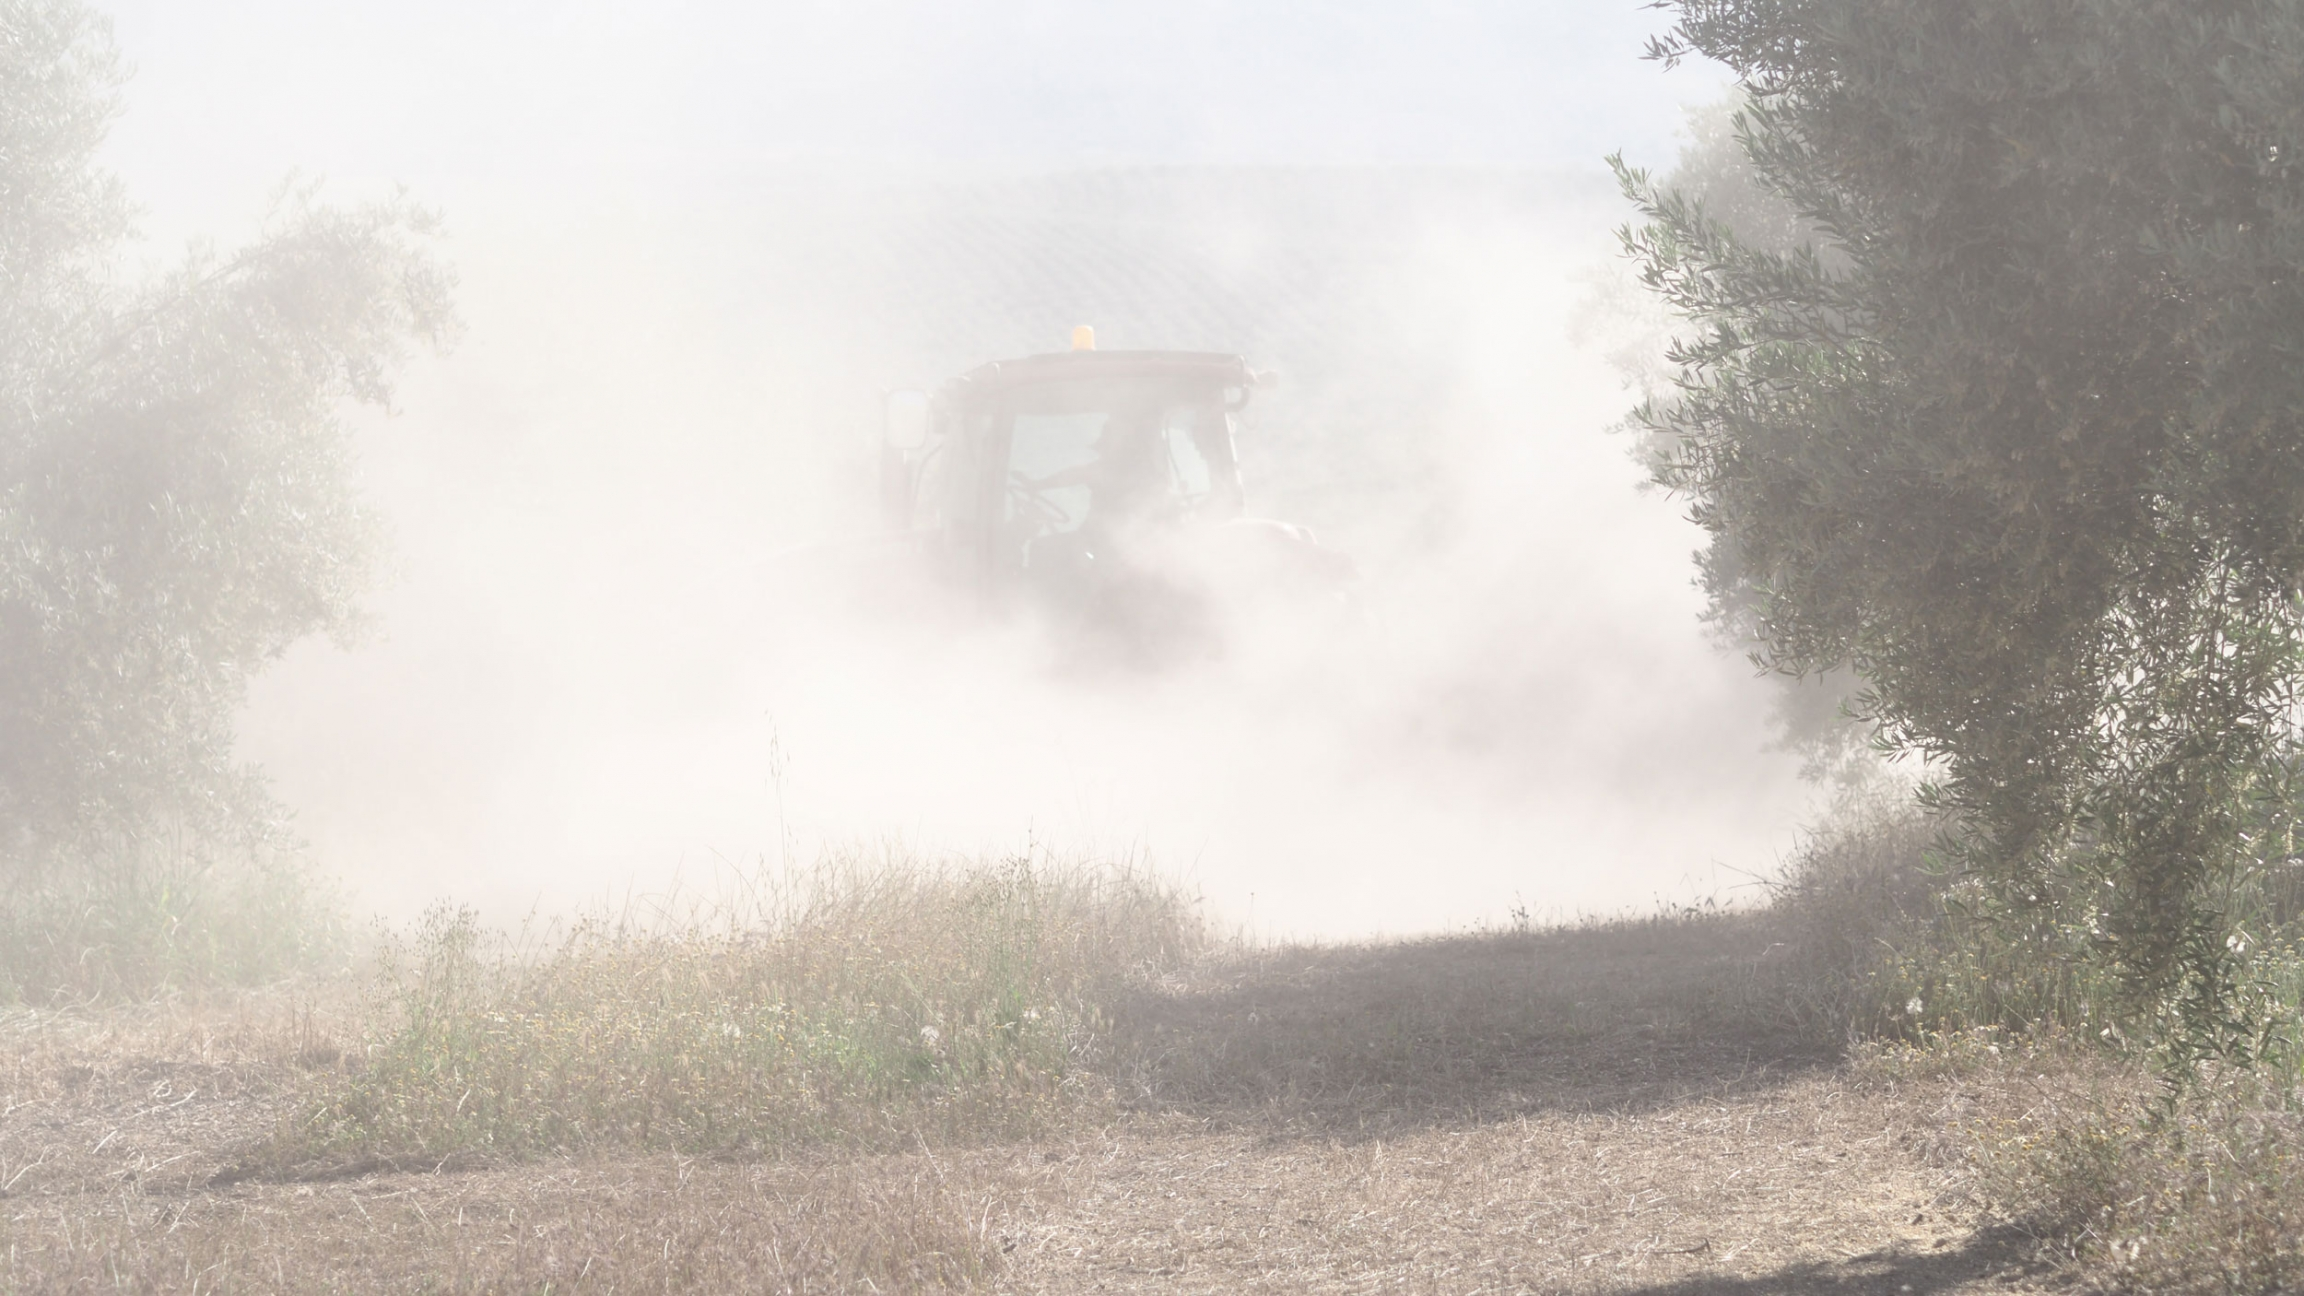 Topsoil dust kicks up from a tractor.